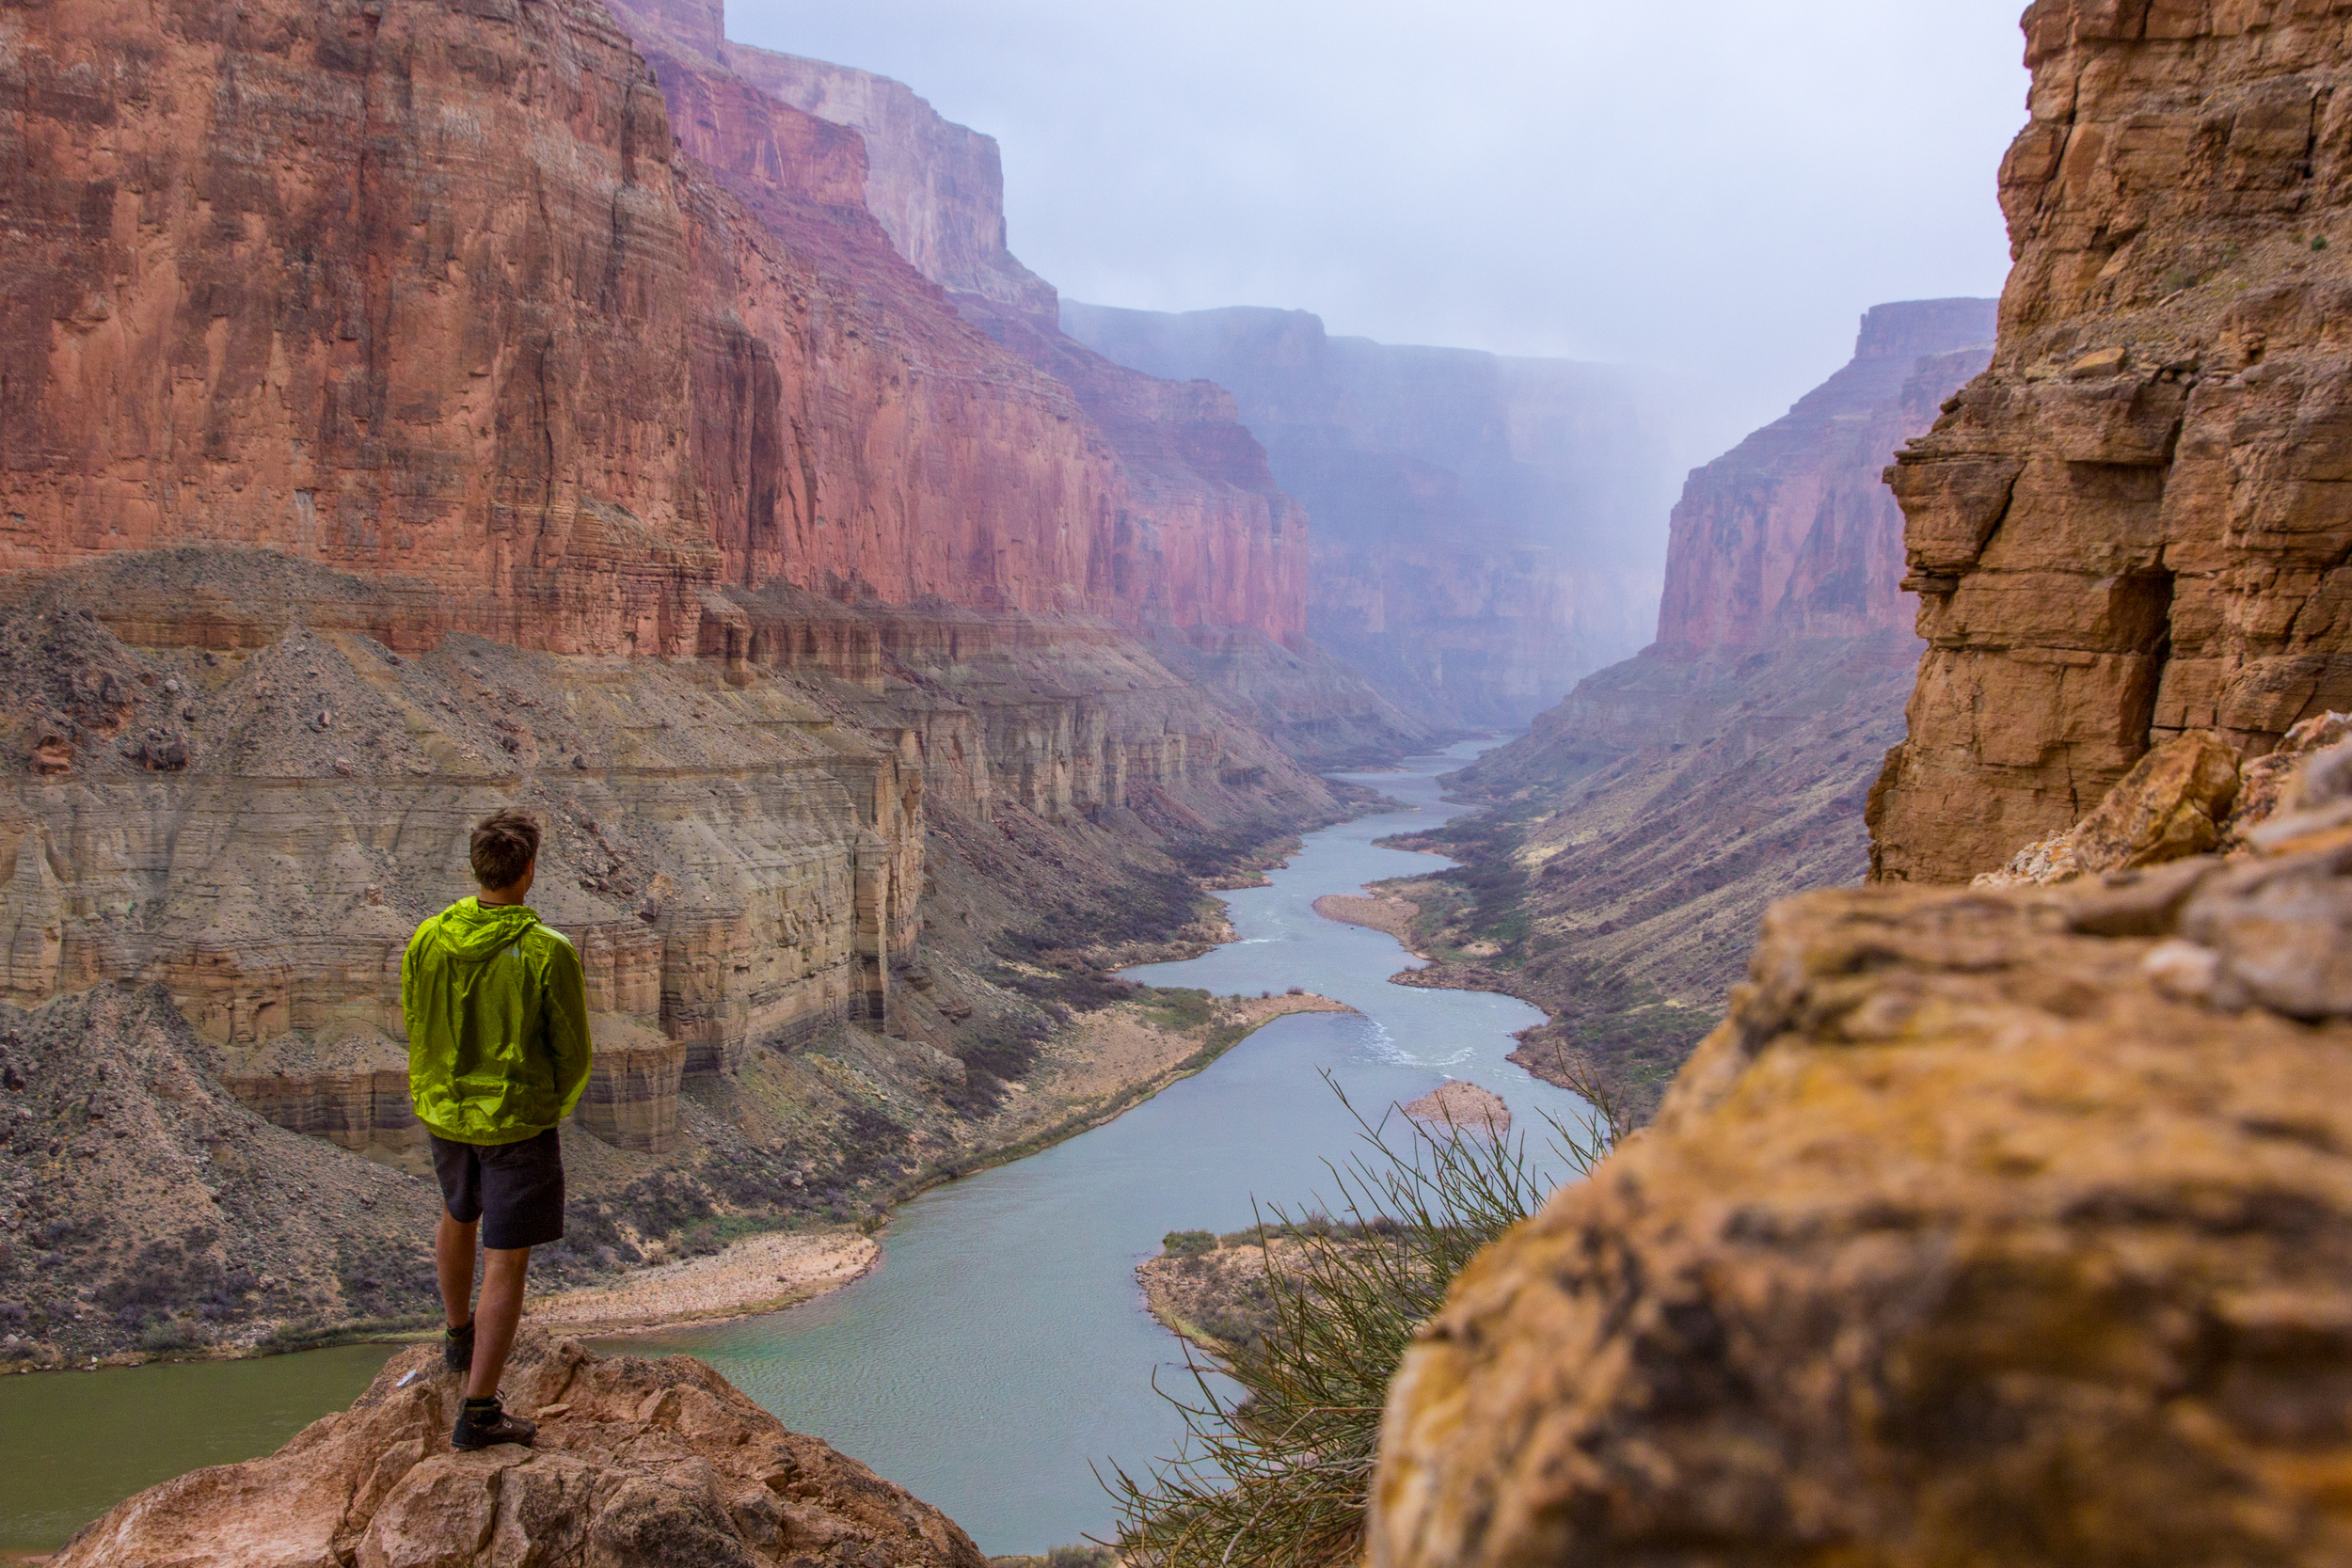 John Nestler looking downstream from Nankoweap on his solo journey. Grand Canyon, AZ